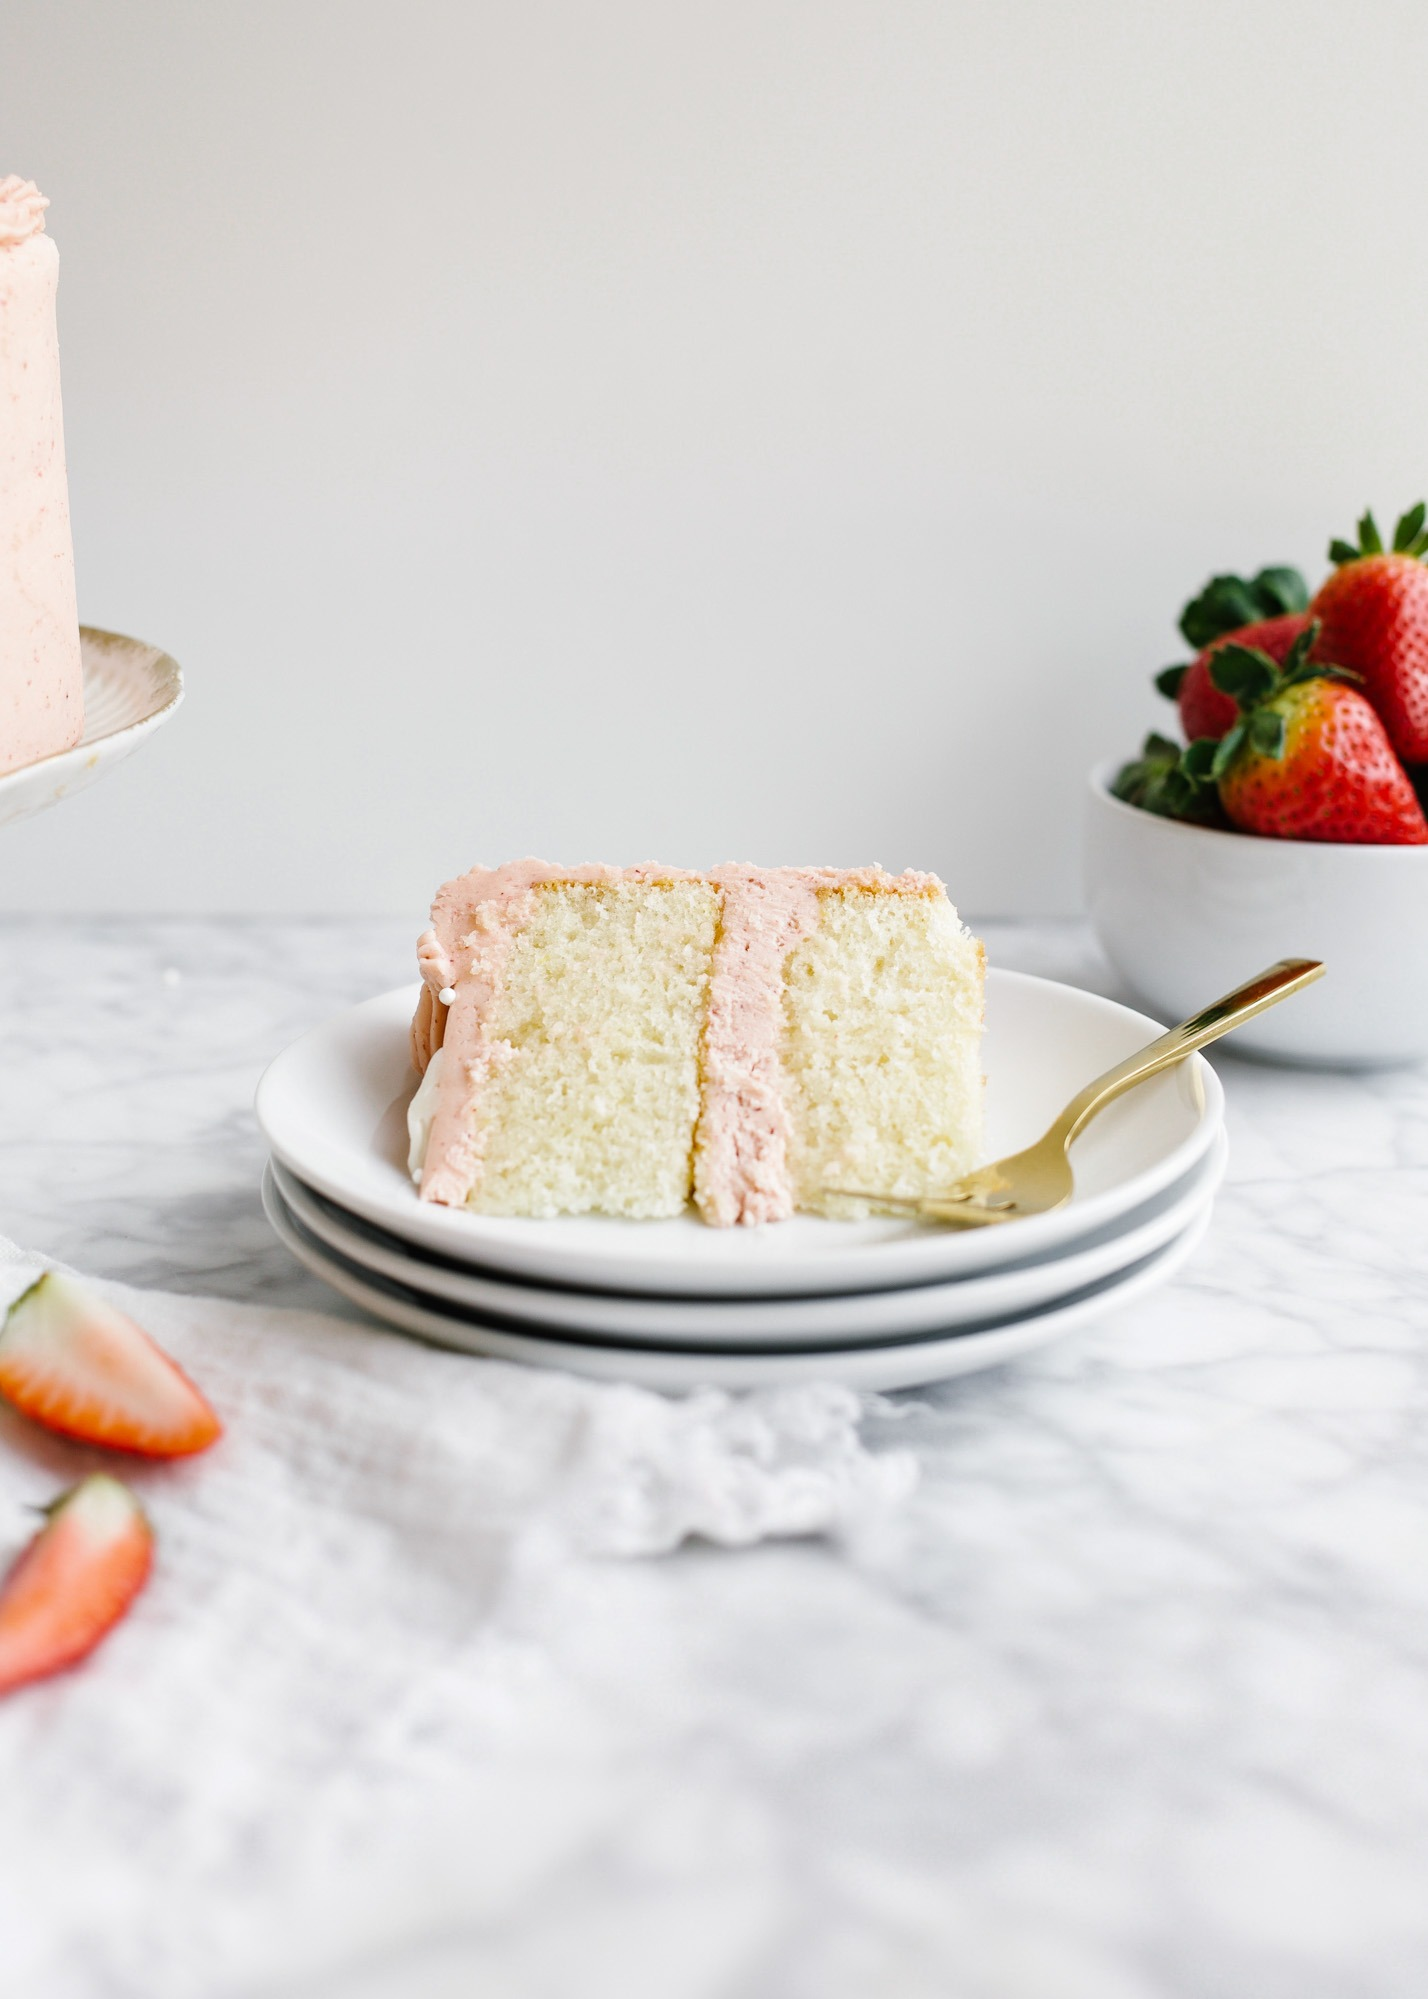 """Champagne and Strawberries Cake by Wood and Spoon blog. This is a simple champagne scented layered cake topped with a real strawberry American buttercream and made extra moist with a champagne simple syrup. Two layers make up this small 6"""" cake which is perfect to gift or share with a valentine. Learn how to make this romantic date night in cake on thewoodandspoon.com"""